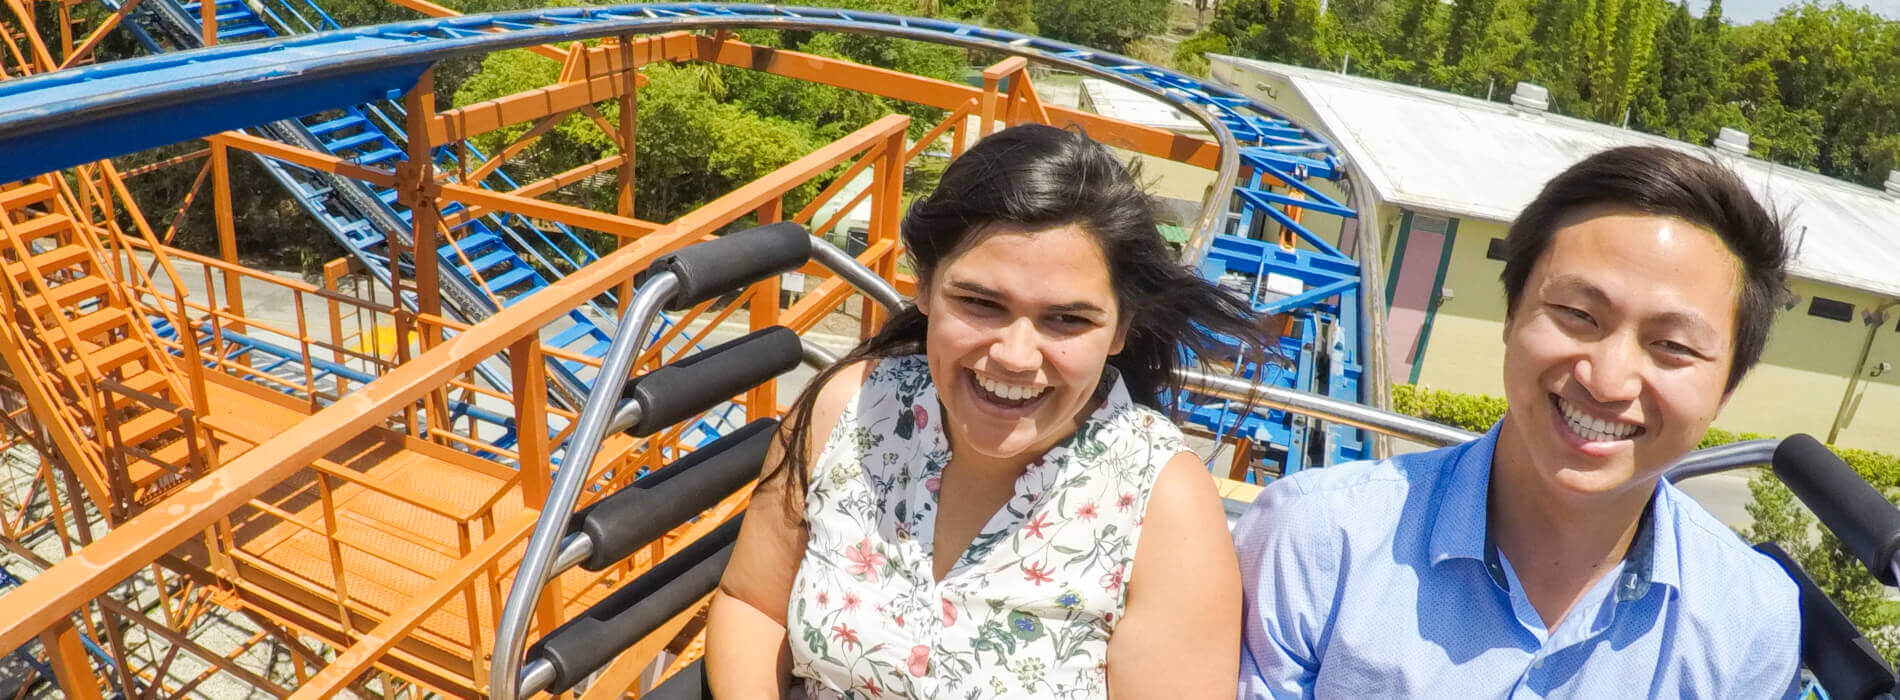 A man and woman smile as they ride a orange and blue ride called Sand Serpent at Busch Gardens Tampa Bay, located in Florida.